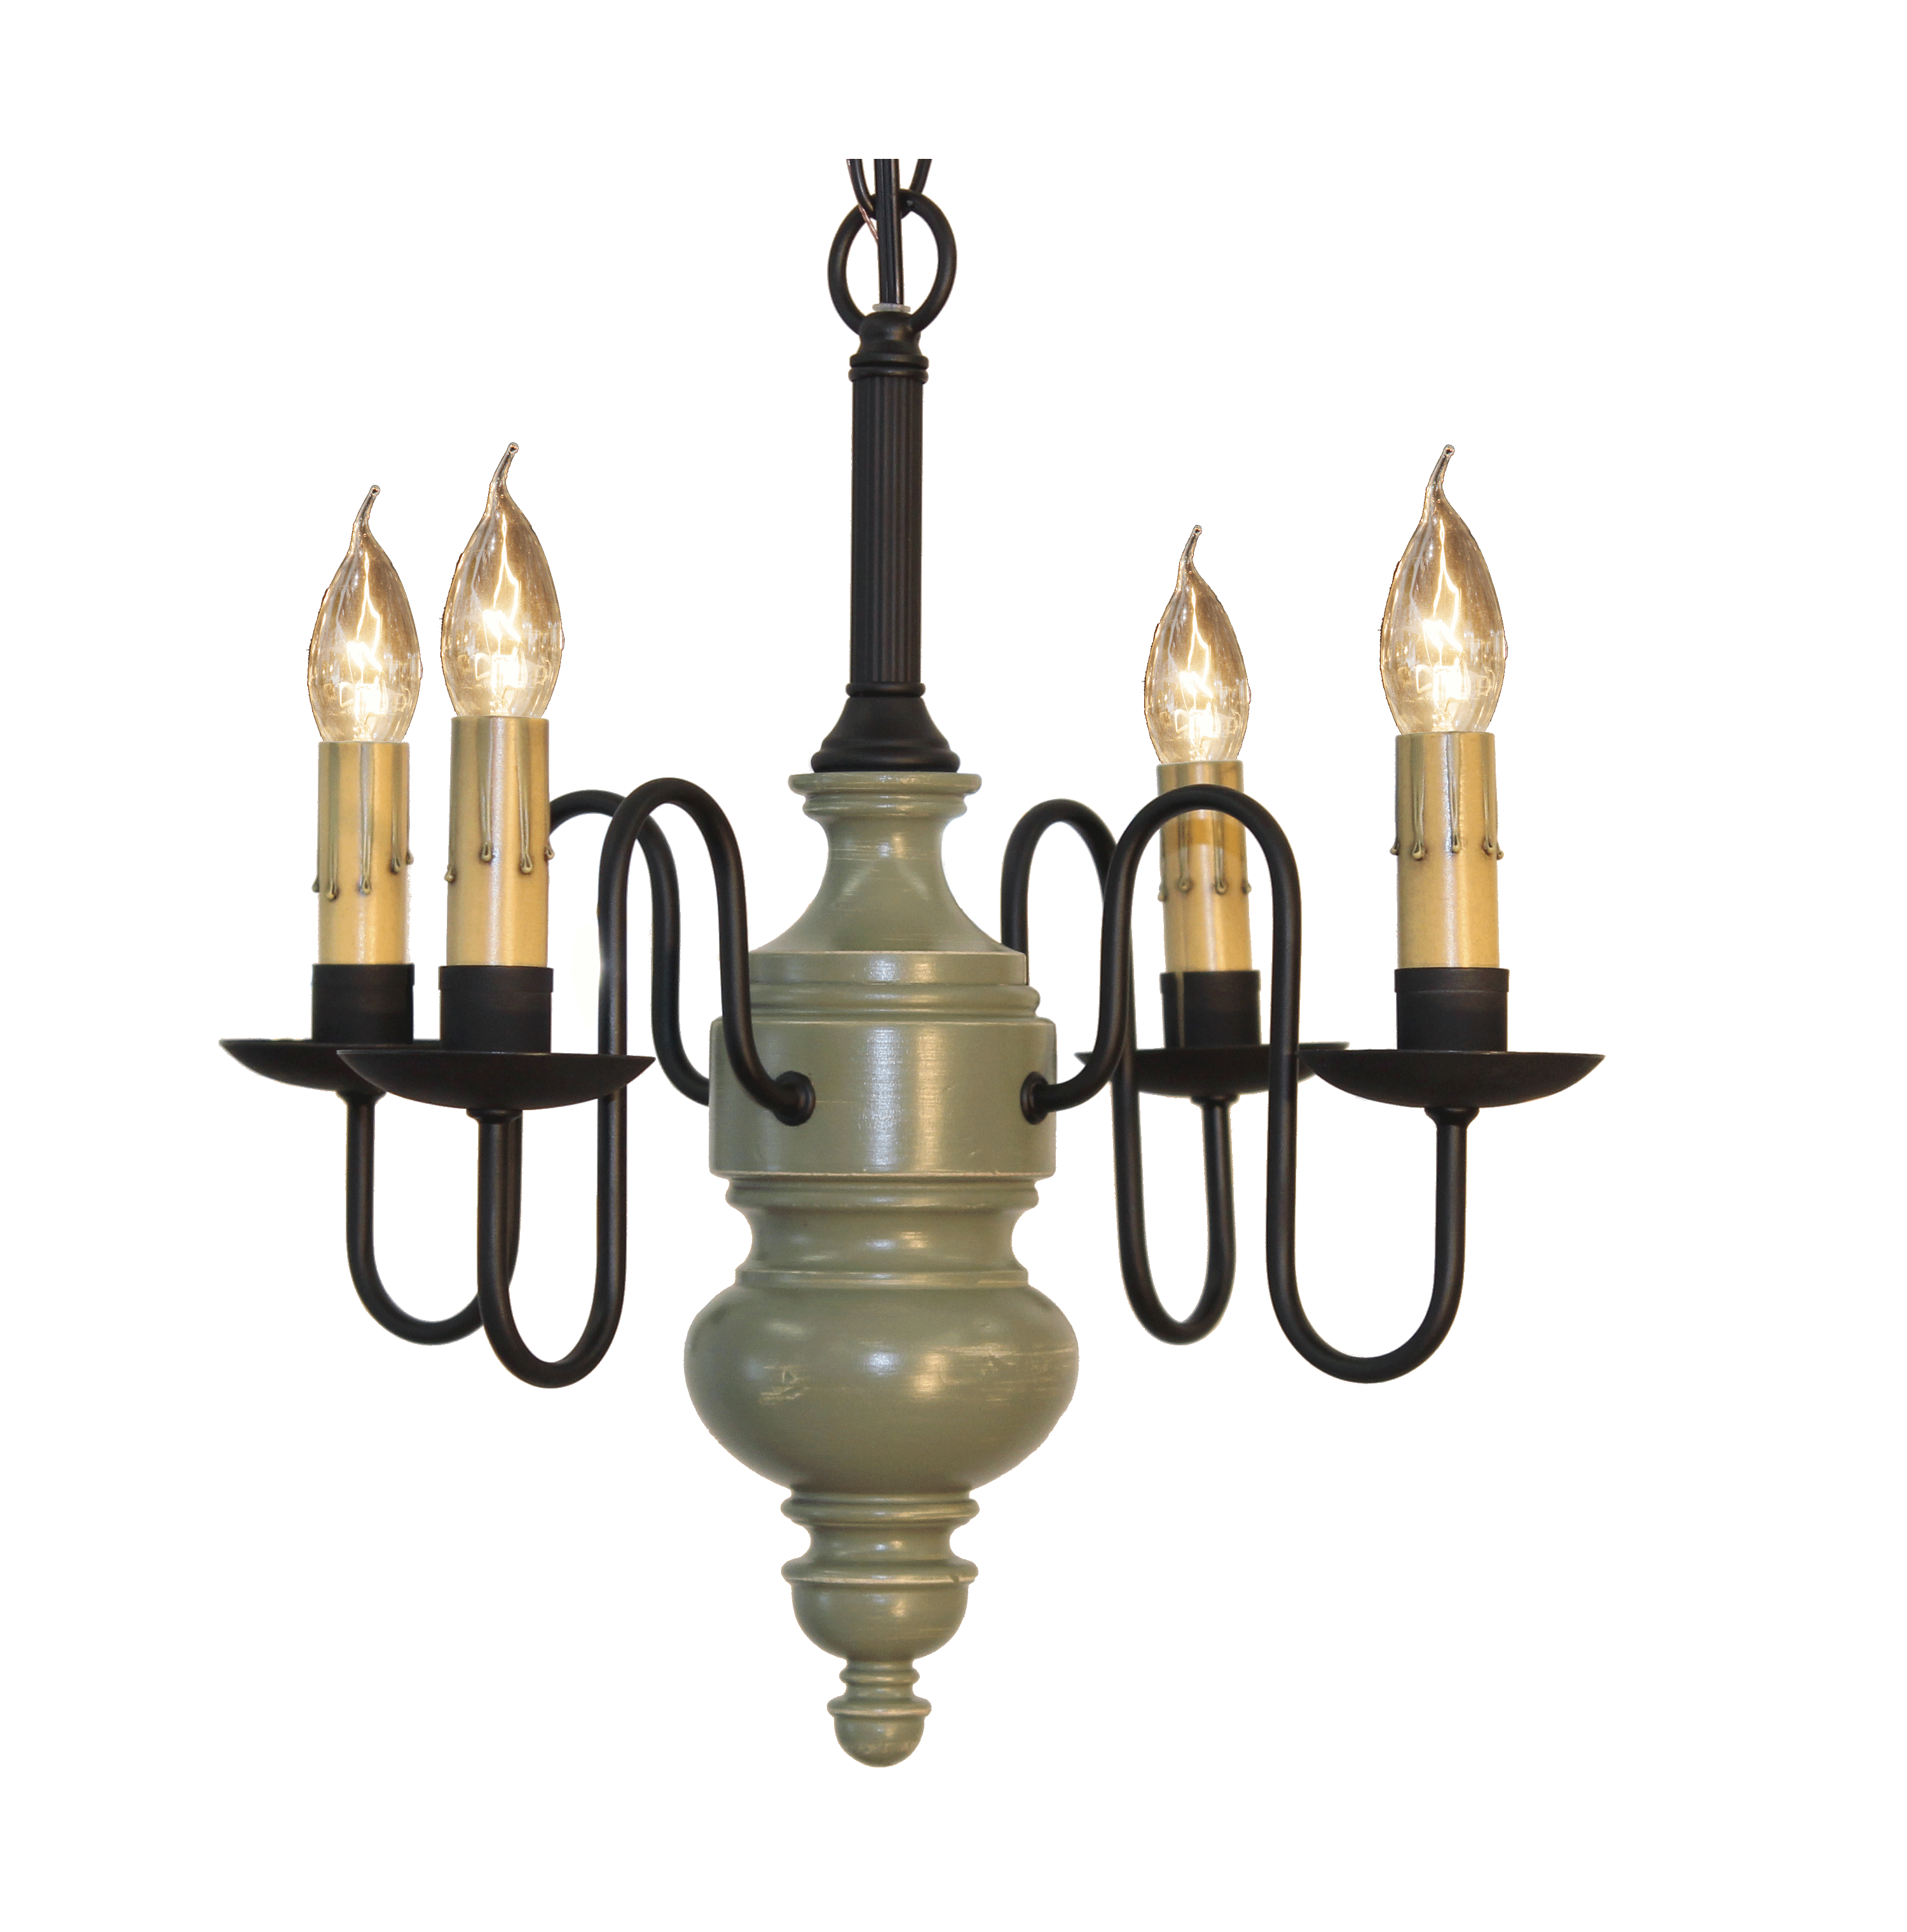 Chesapeake Mini Chandelier Finished In Williamsburg Stone, Tate Olive